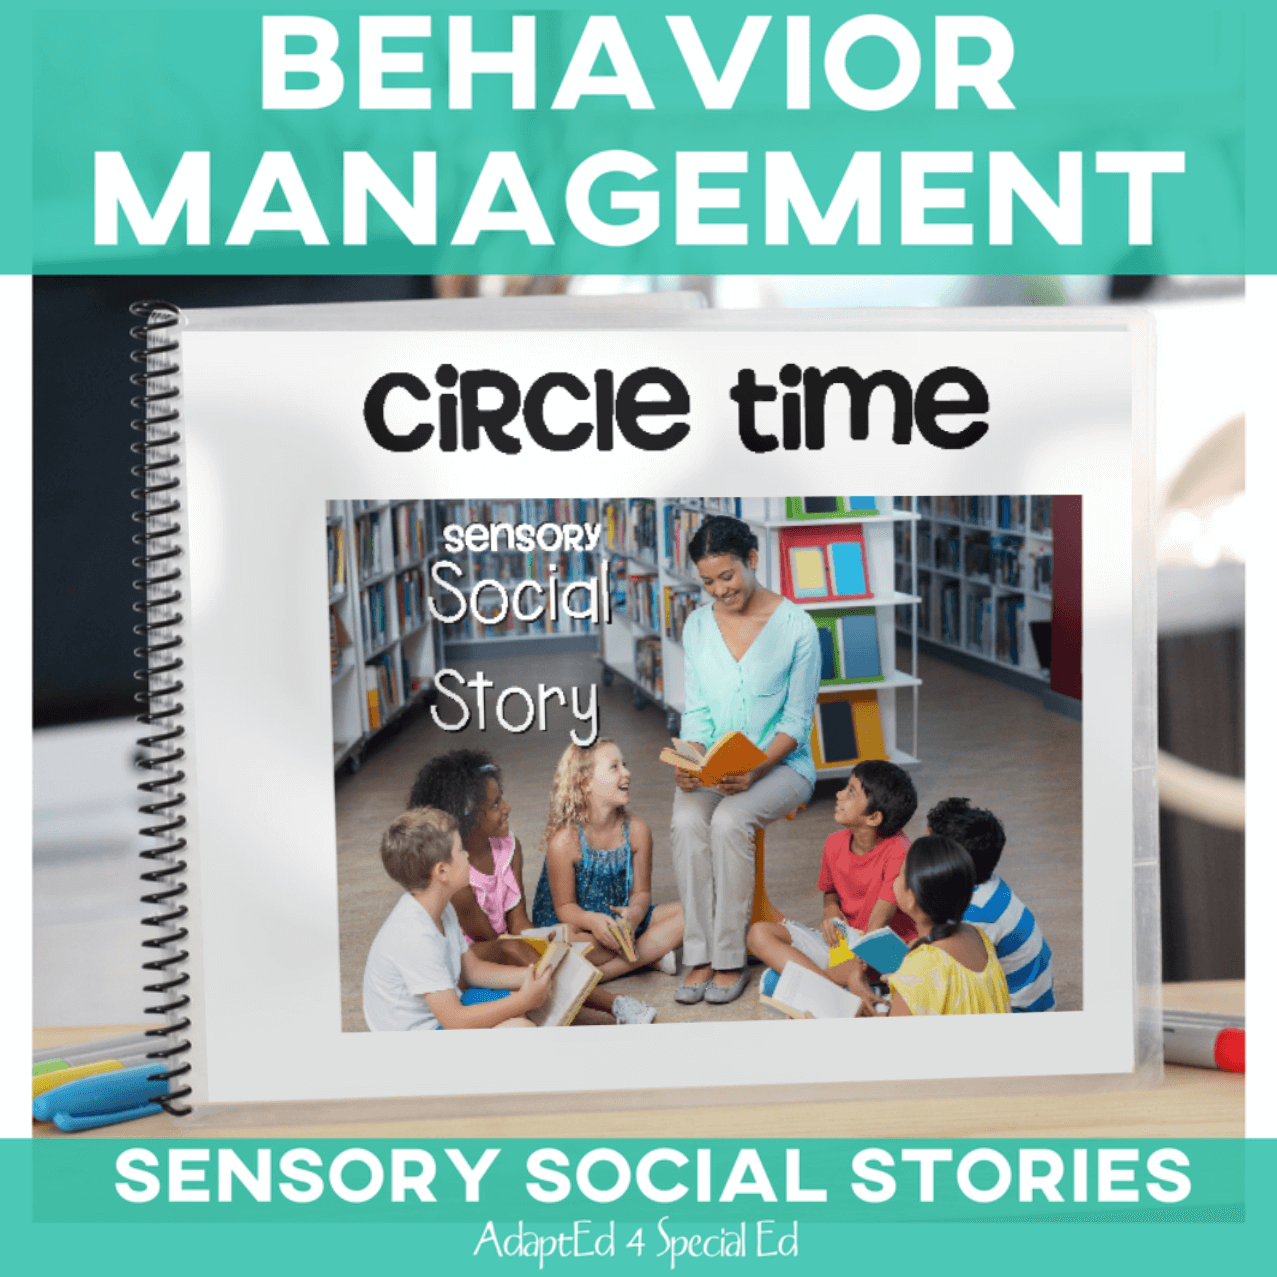 Behavior Management Sensory Social Stories Circle Time AdaptEd 4 Special Ed